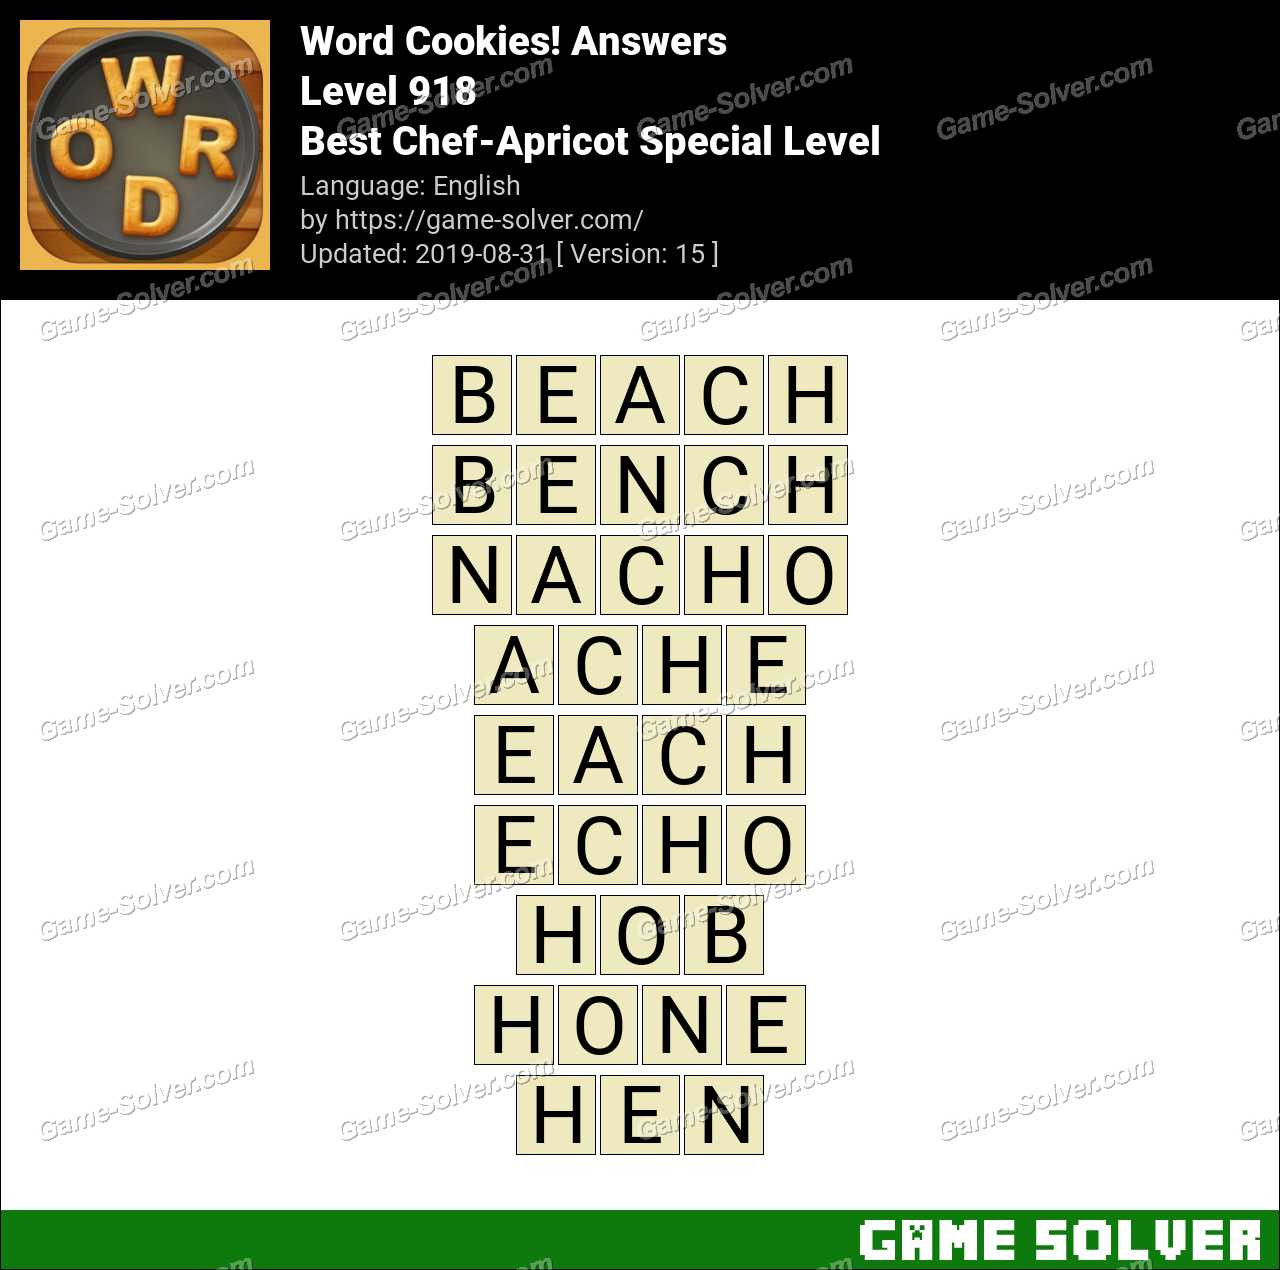 Word Cookies Best Chef-Apricot Special Level Answers